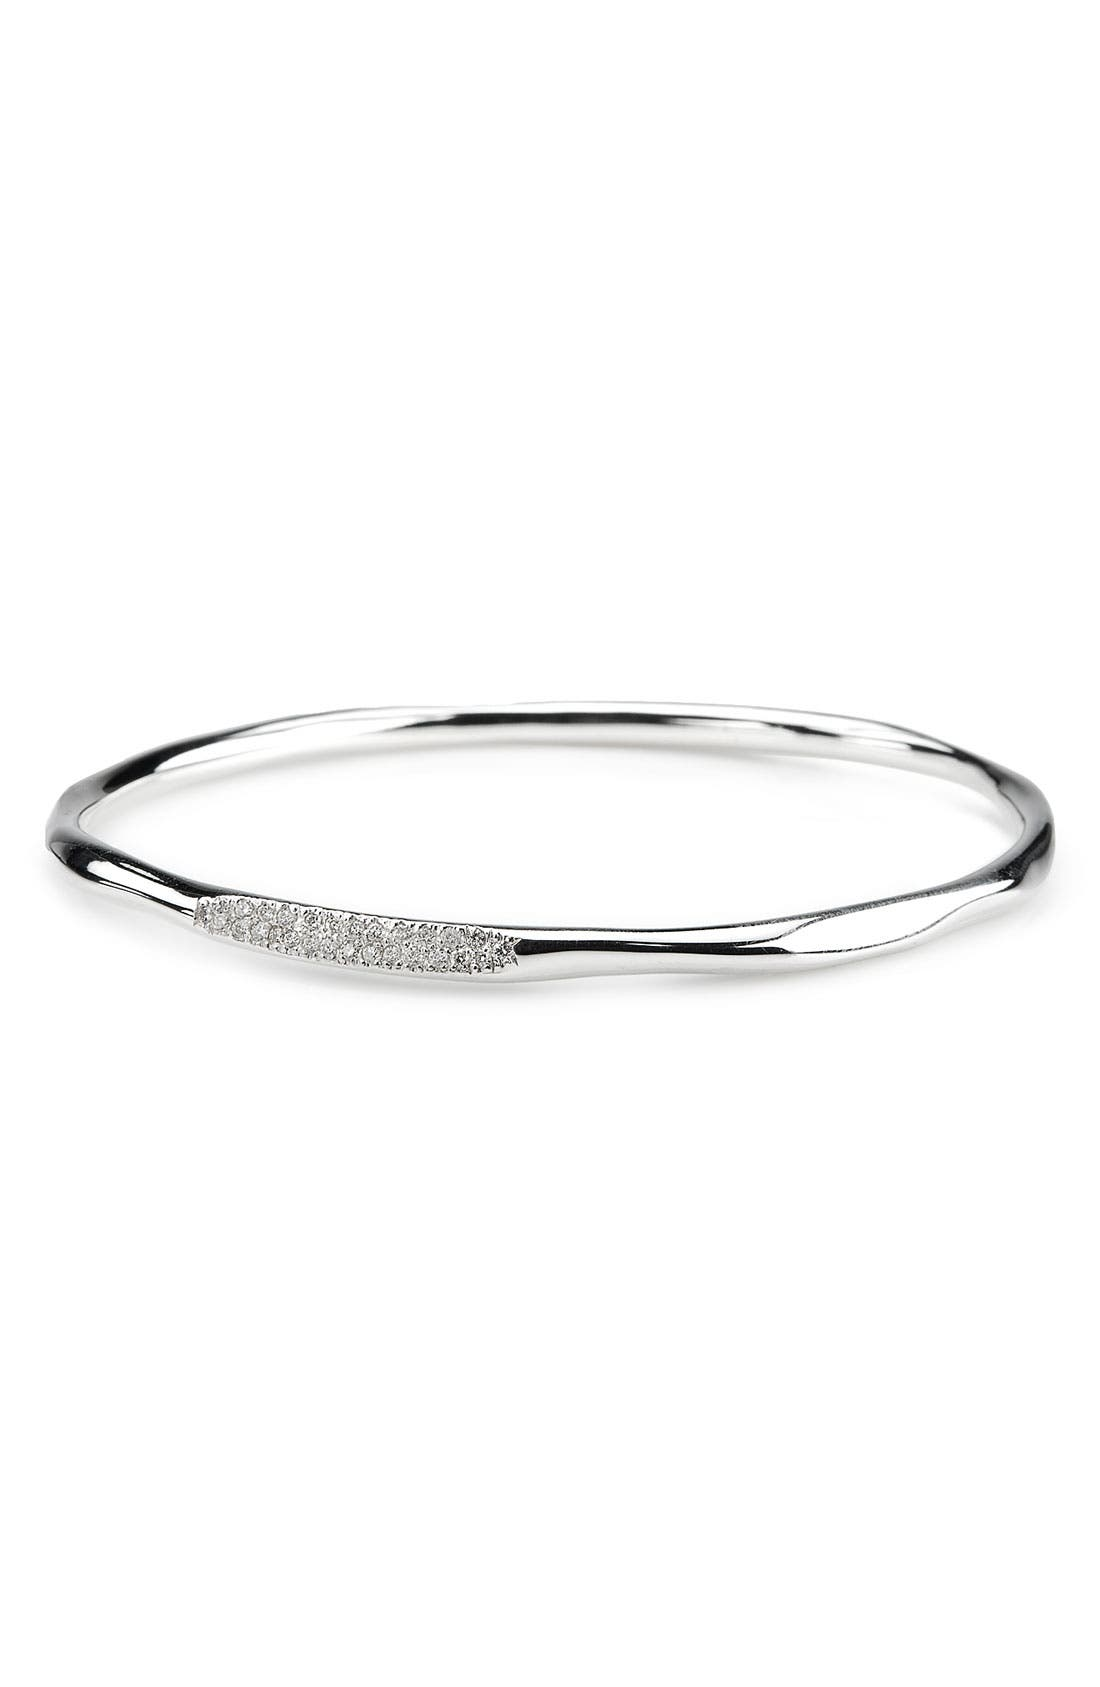 Alternate Image 1 Selected - Ippolita 'Silver Rain' Diamond Pavé Bangle